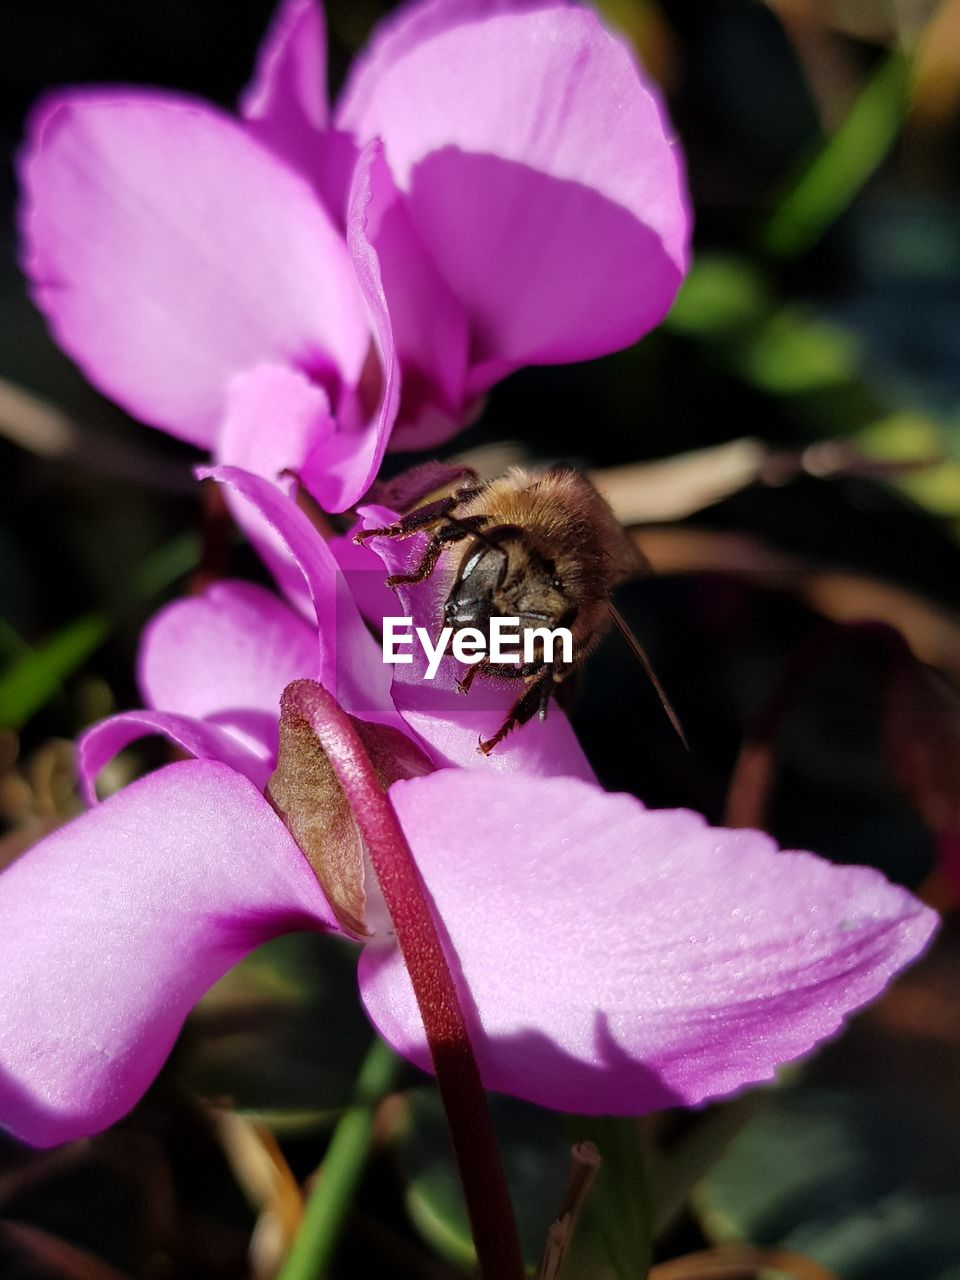 flower, flowering plant, petal, beauty in nature, animal, animal themes, insect, plant, invertebrate, animal wildlife, one animal, animals in the wild, freshness, close-up, bee, fragility, growth, vulnerability, flower head, pink color, no people, pollen, pollination, purple, outdoors, bumblebee